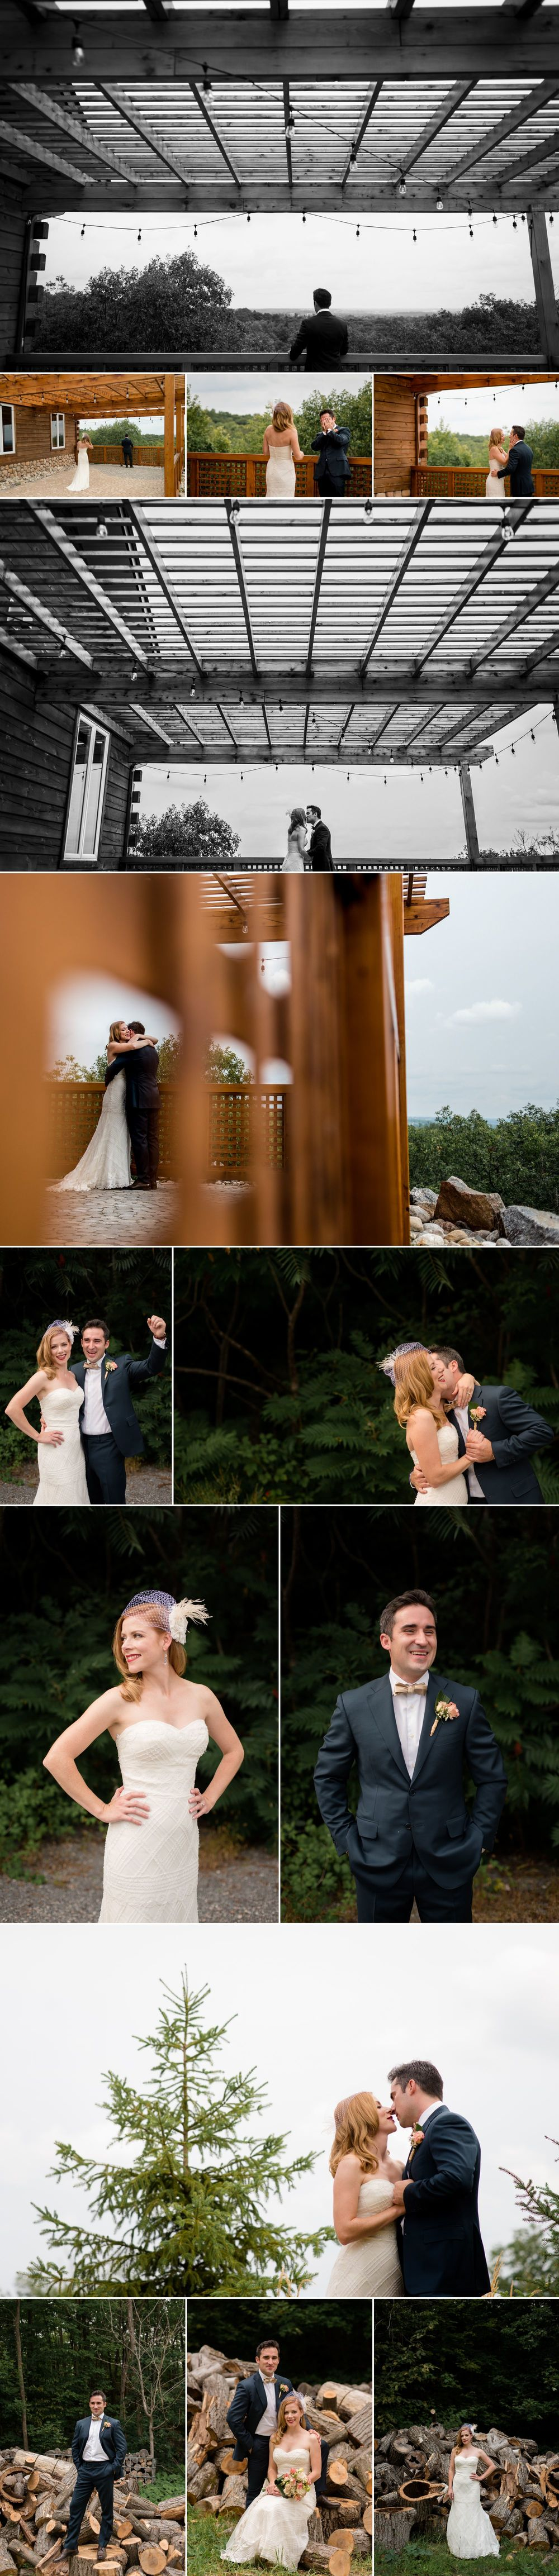 Outdoor wedding photographs